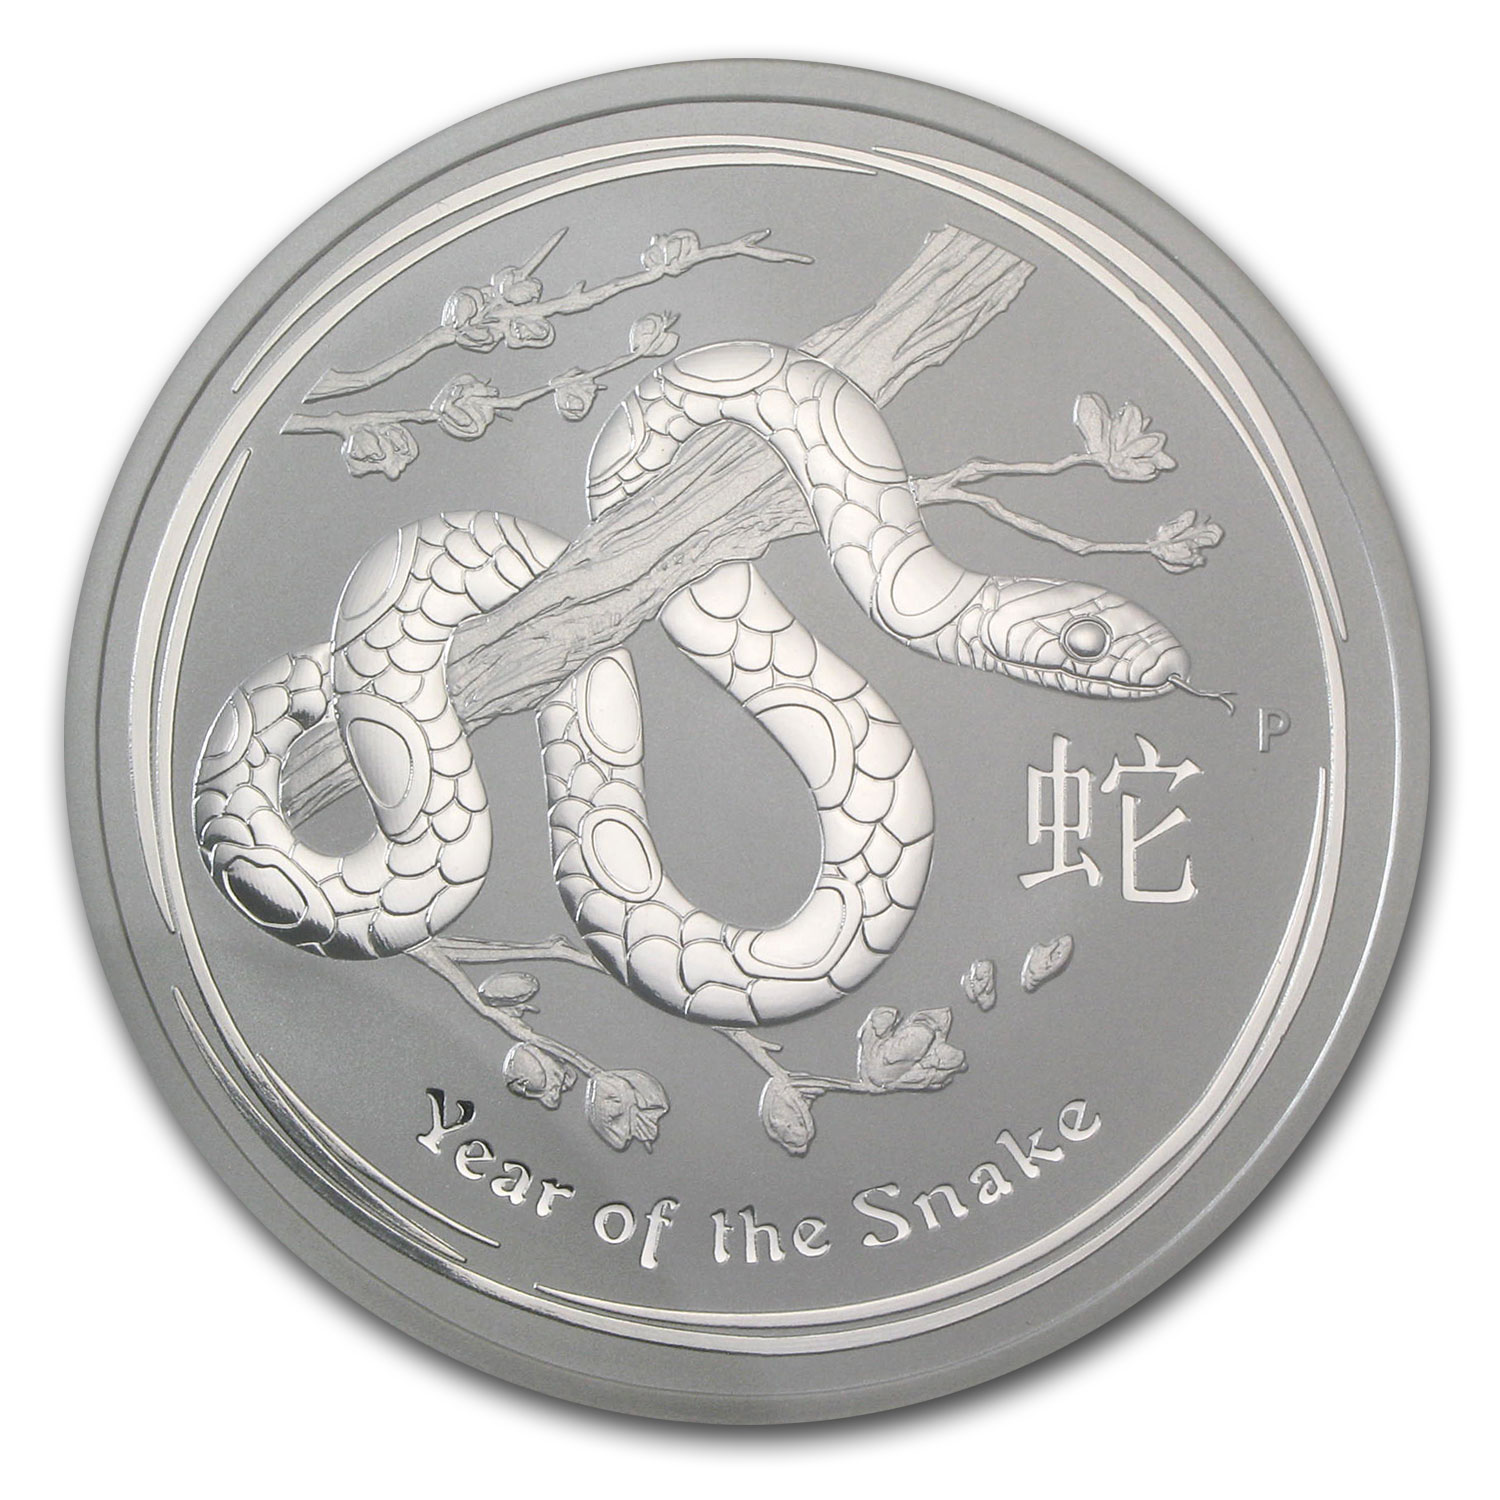 2013 Australia 2 oz Silver Year of the Snake MS-69 NGC (Error)